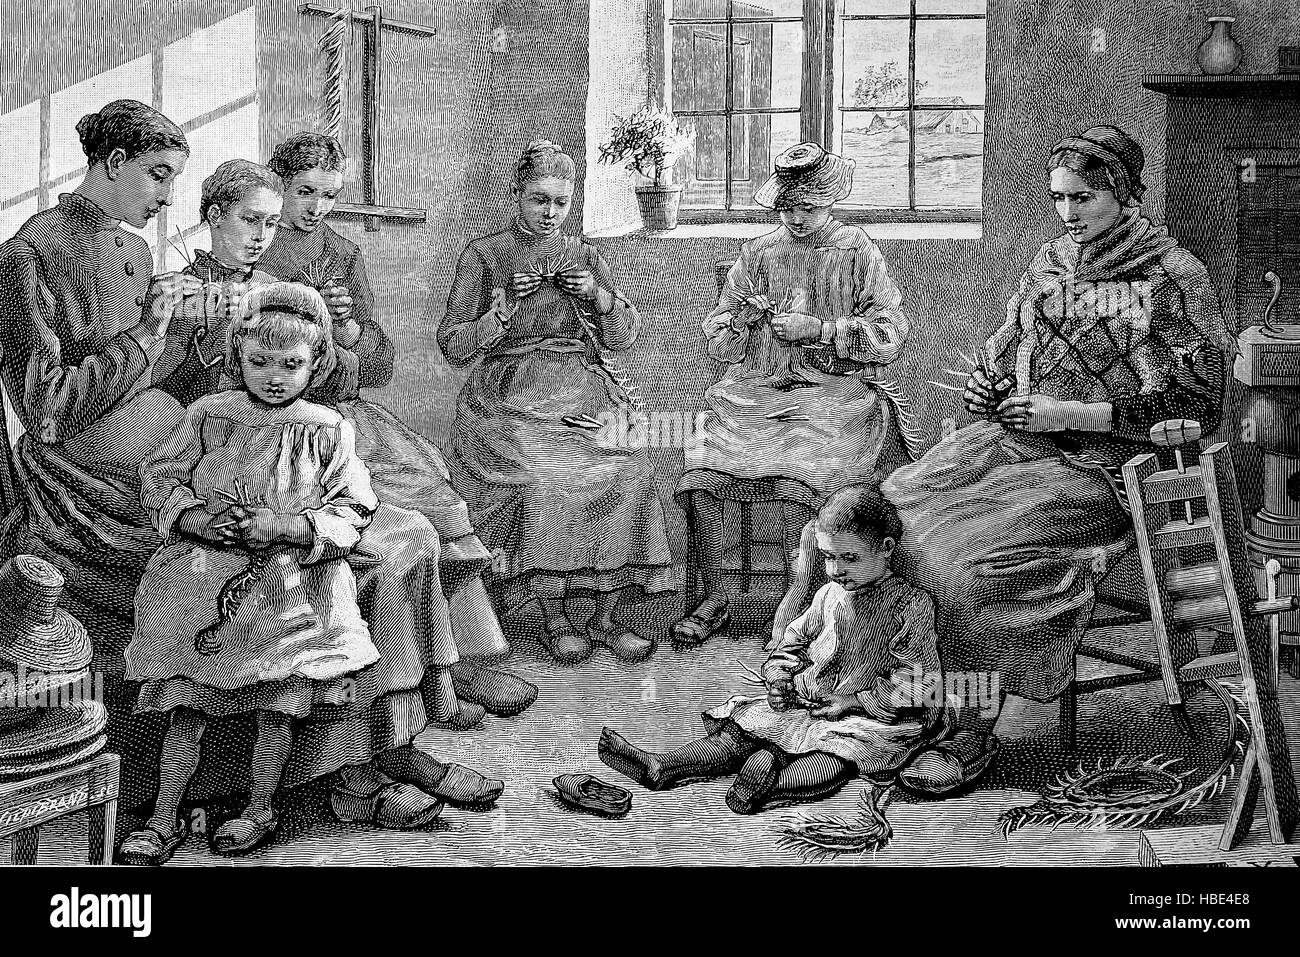 straw weaving, Braiding with straw, Belgium, illustration, woodcut from 1880 - Stock Image